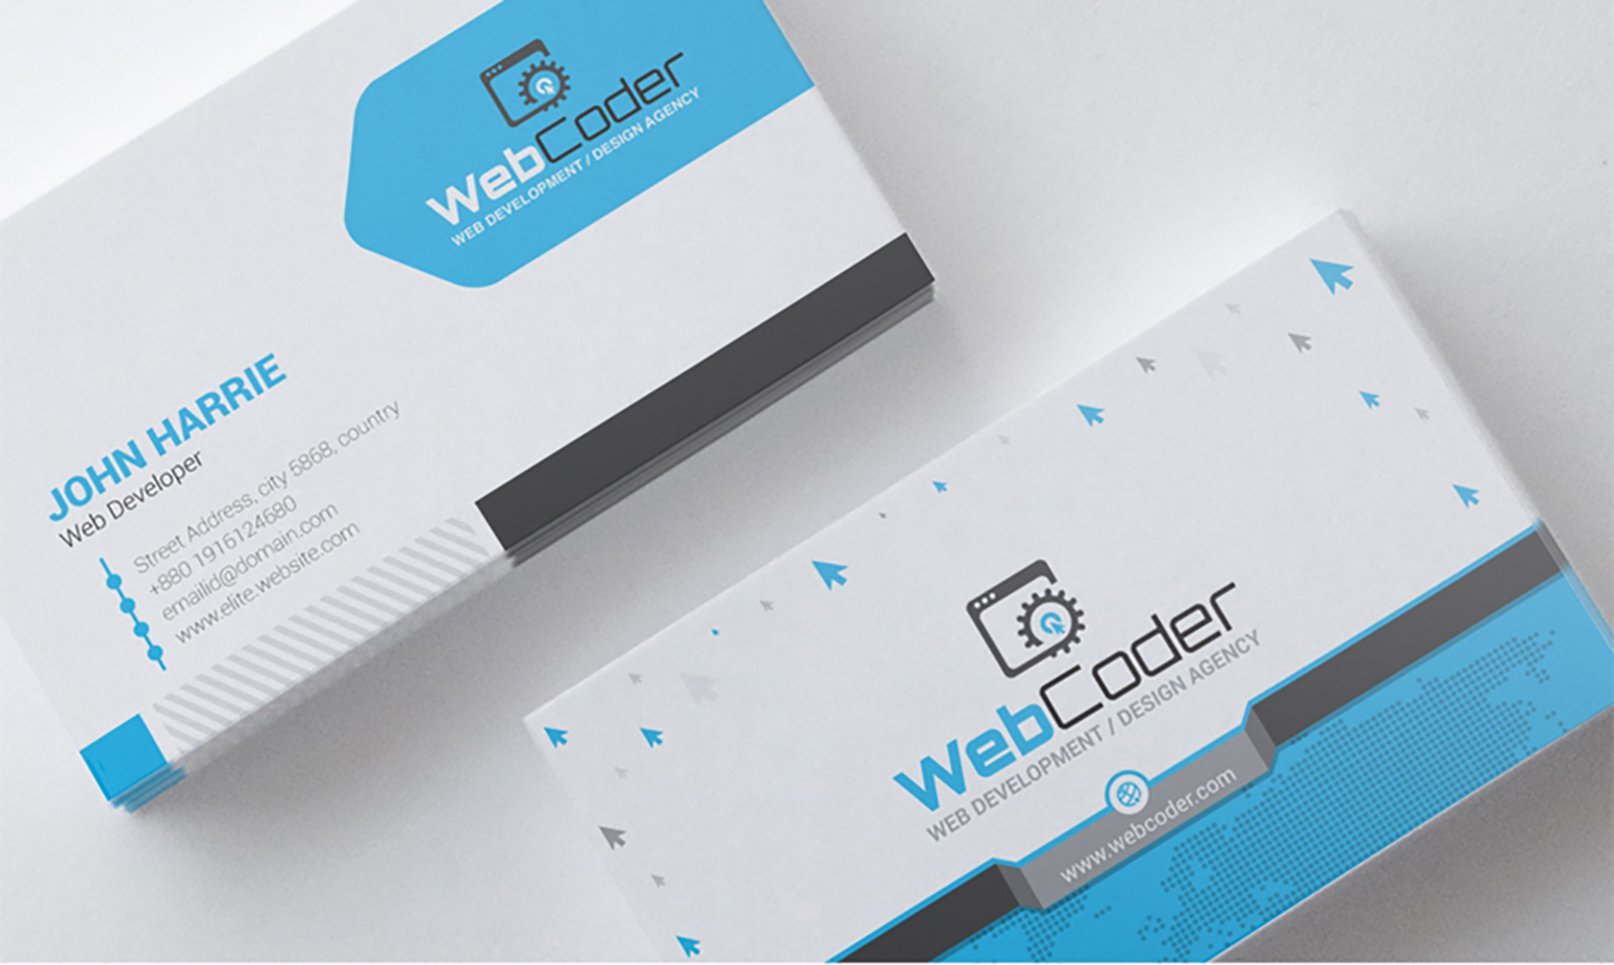 Business Card Design For Web Design And Developer PSD Template #66306